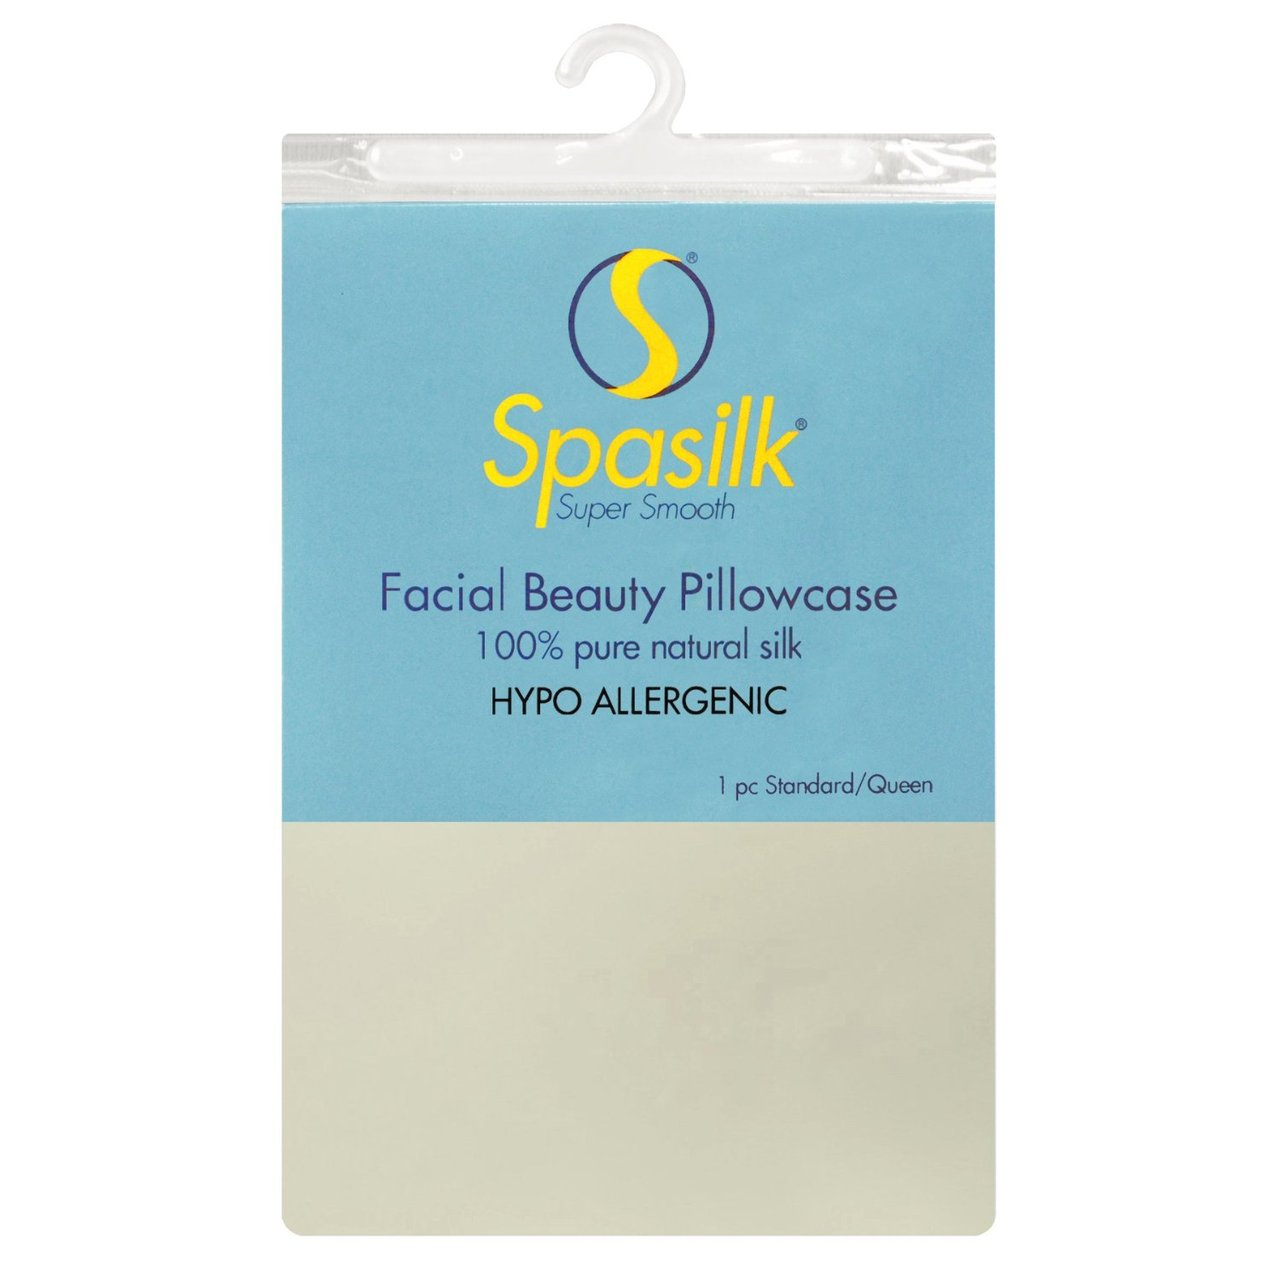 Spasilk-100-Pure-Silk-Facial-Beauty-Pillowcases